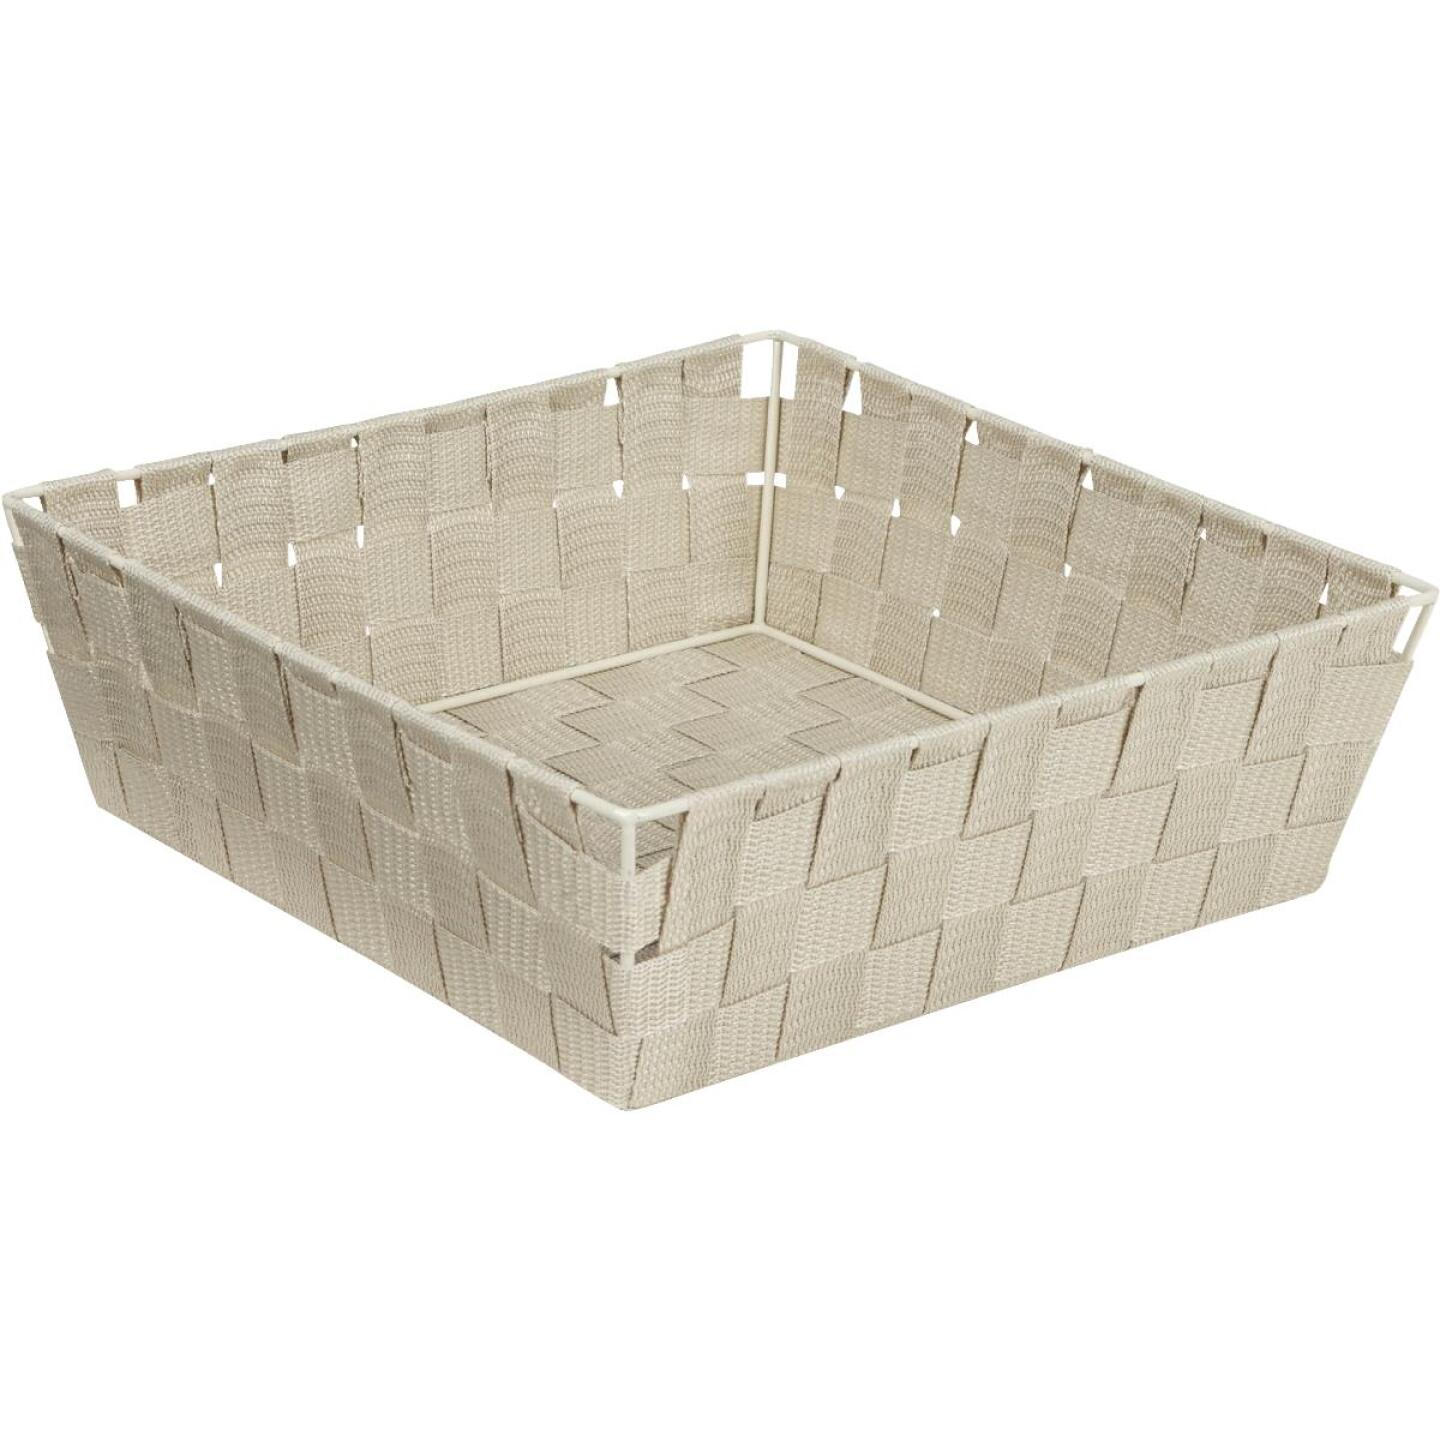 Home Impressions 11.75 In. x 3.75 In. H. Woven Storage Basket, Beige Image 1